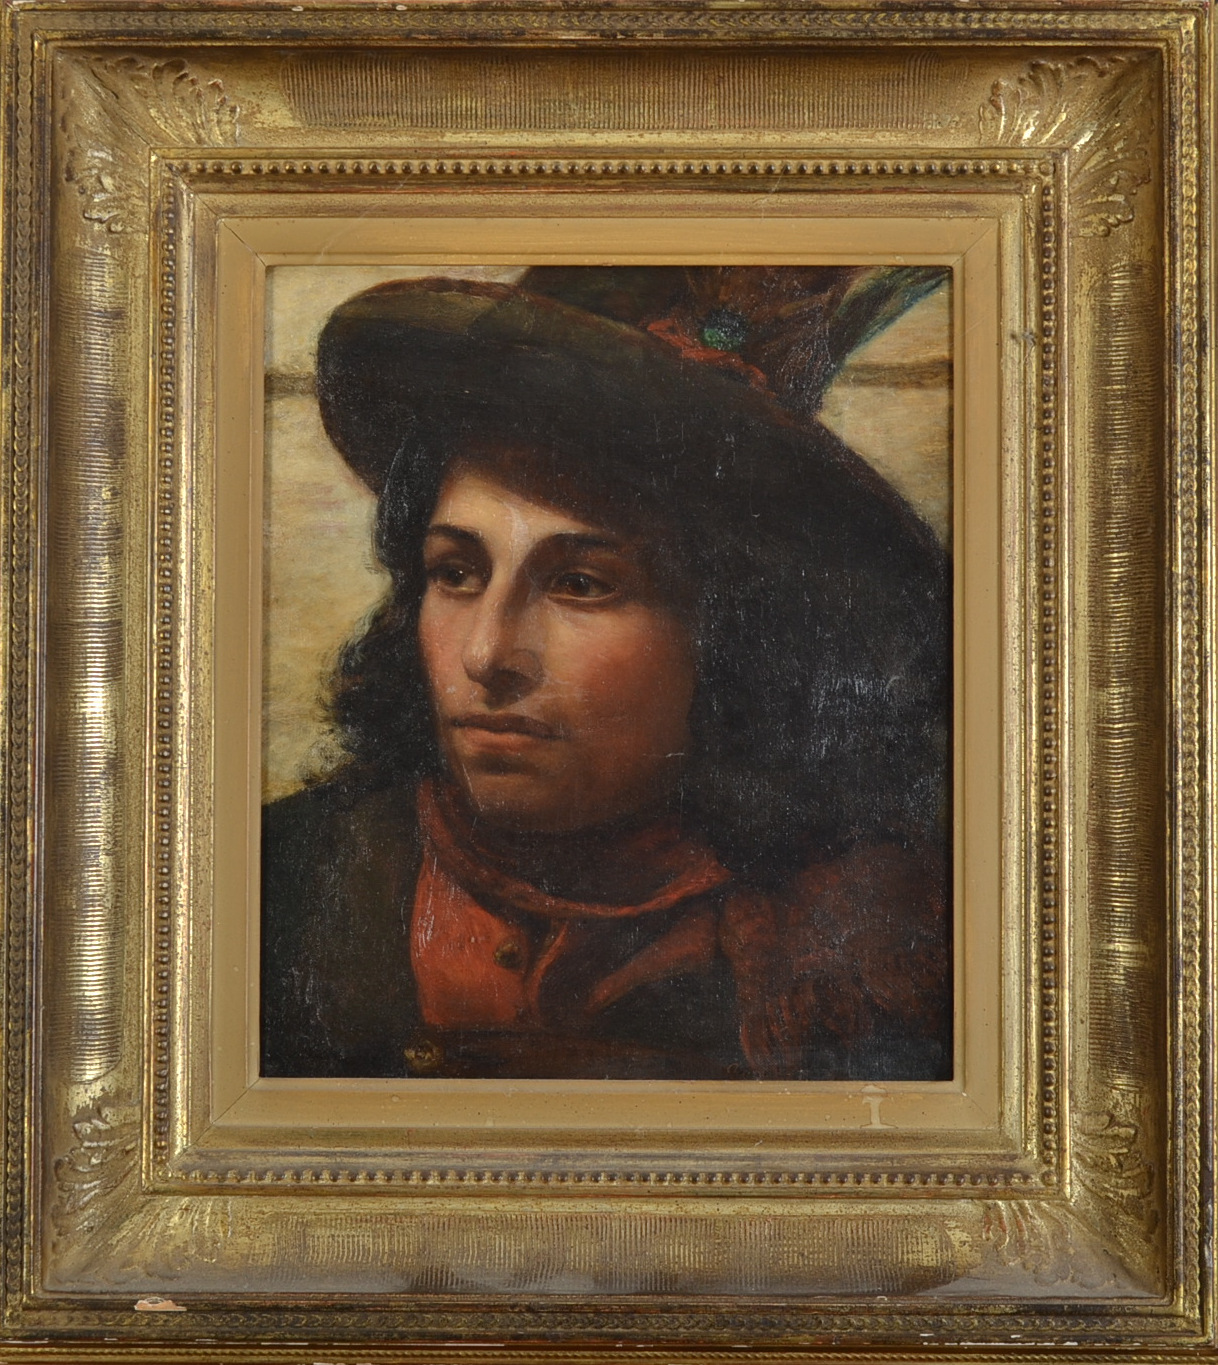 Lot 292 - ANNIE LOUISA SWYNNERTON Portrait of a Young Italian Man Oil on canvas Signed 36 x 30.5cm